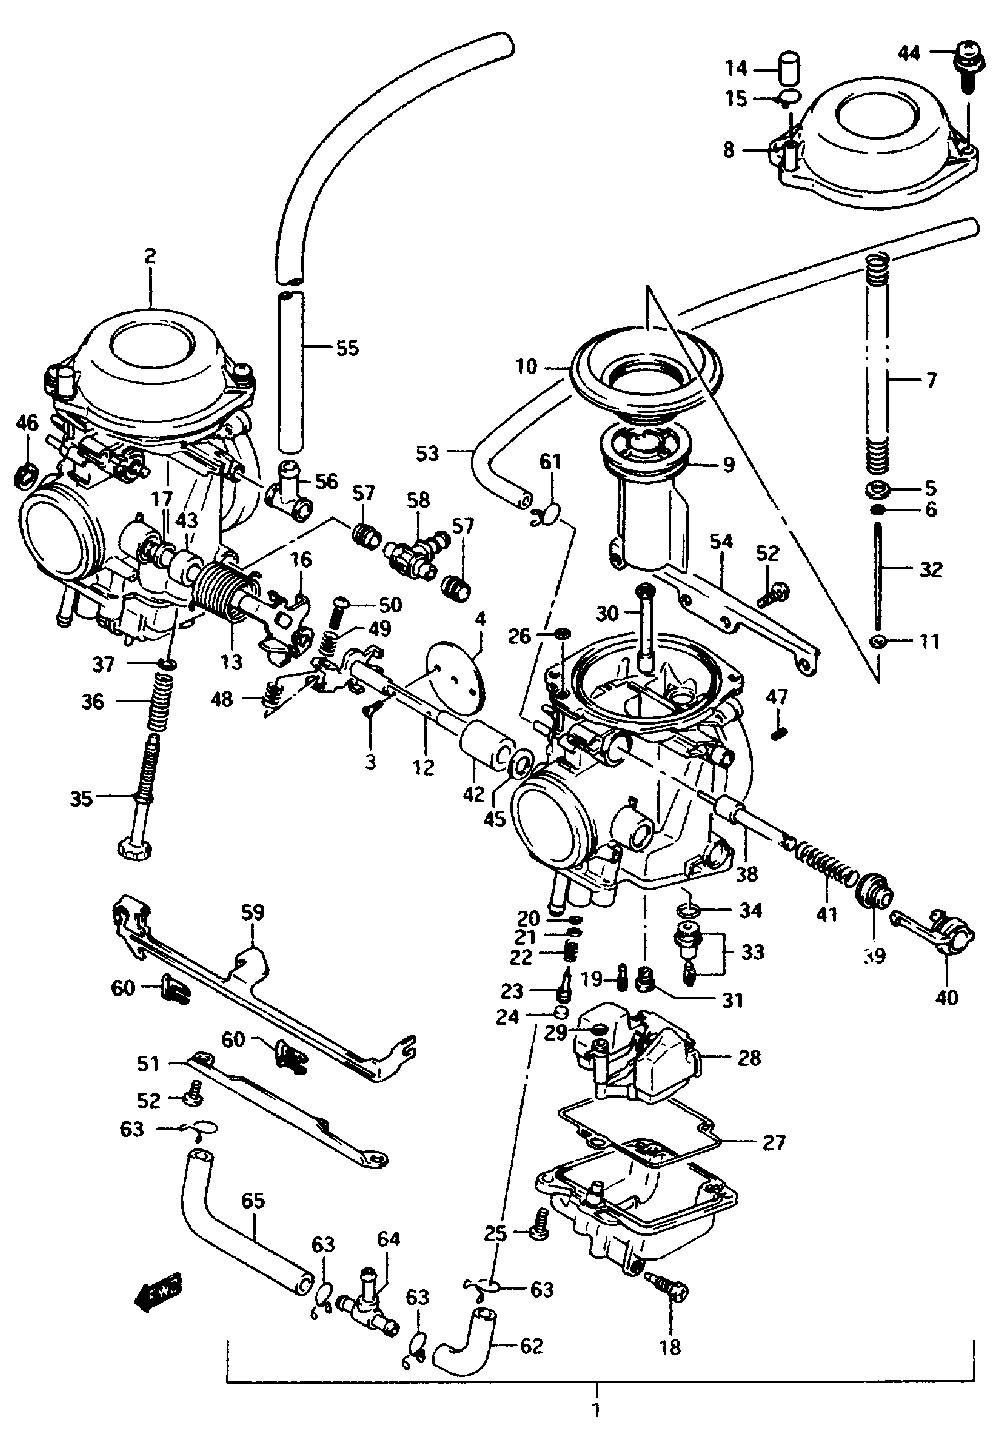 Zenith Carburetor Parts Diagram Bs Carb Electrical Work Wiring Mikuni Car Interior Design Protein Carburetors Diagrams